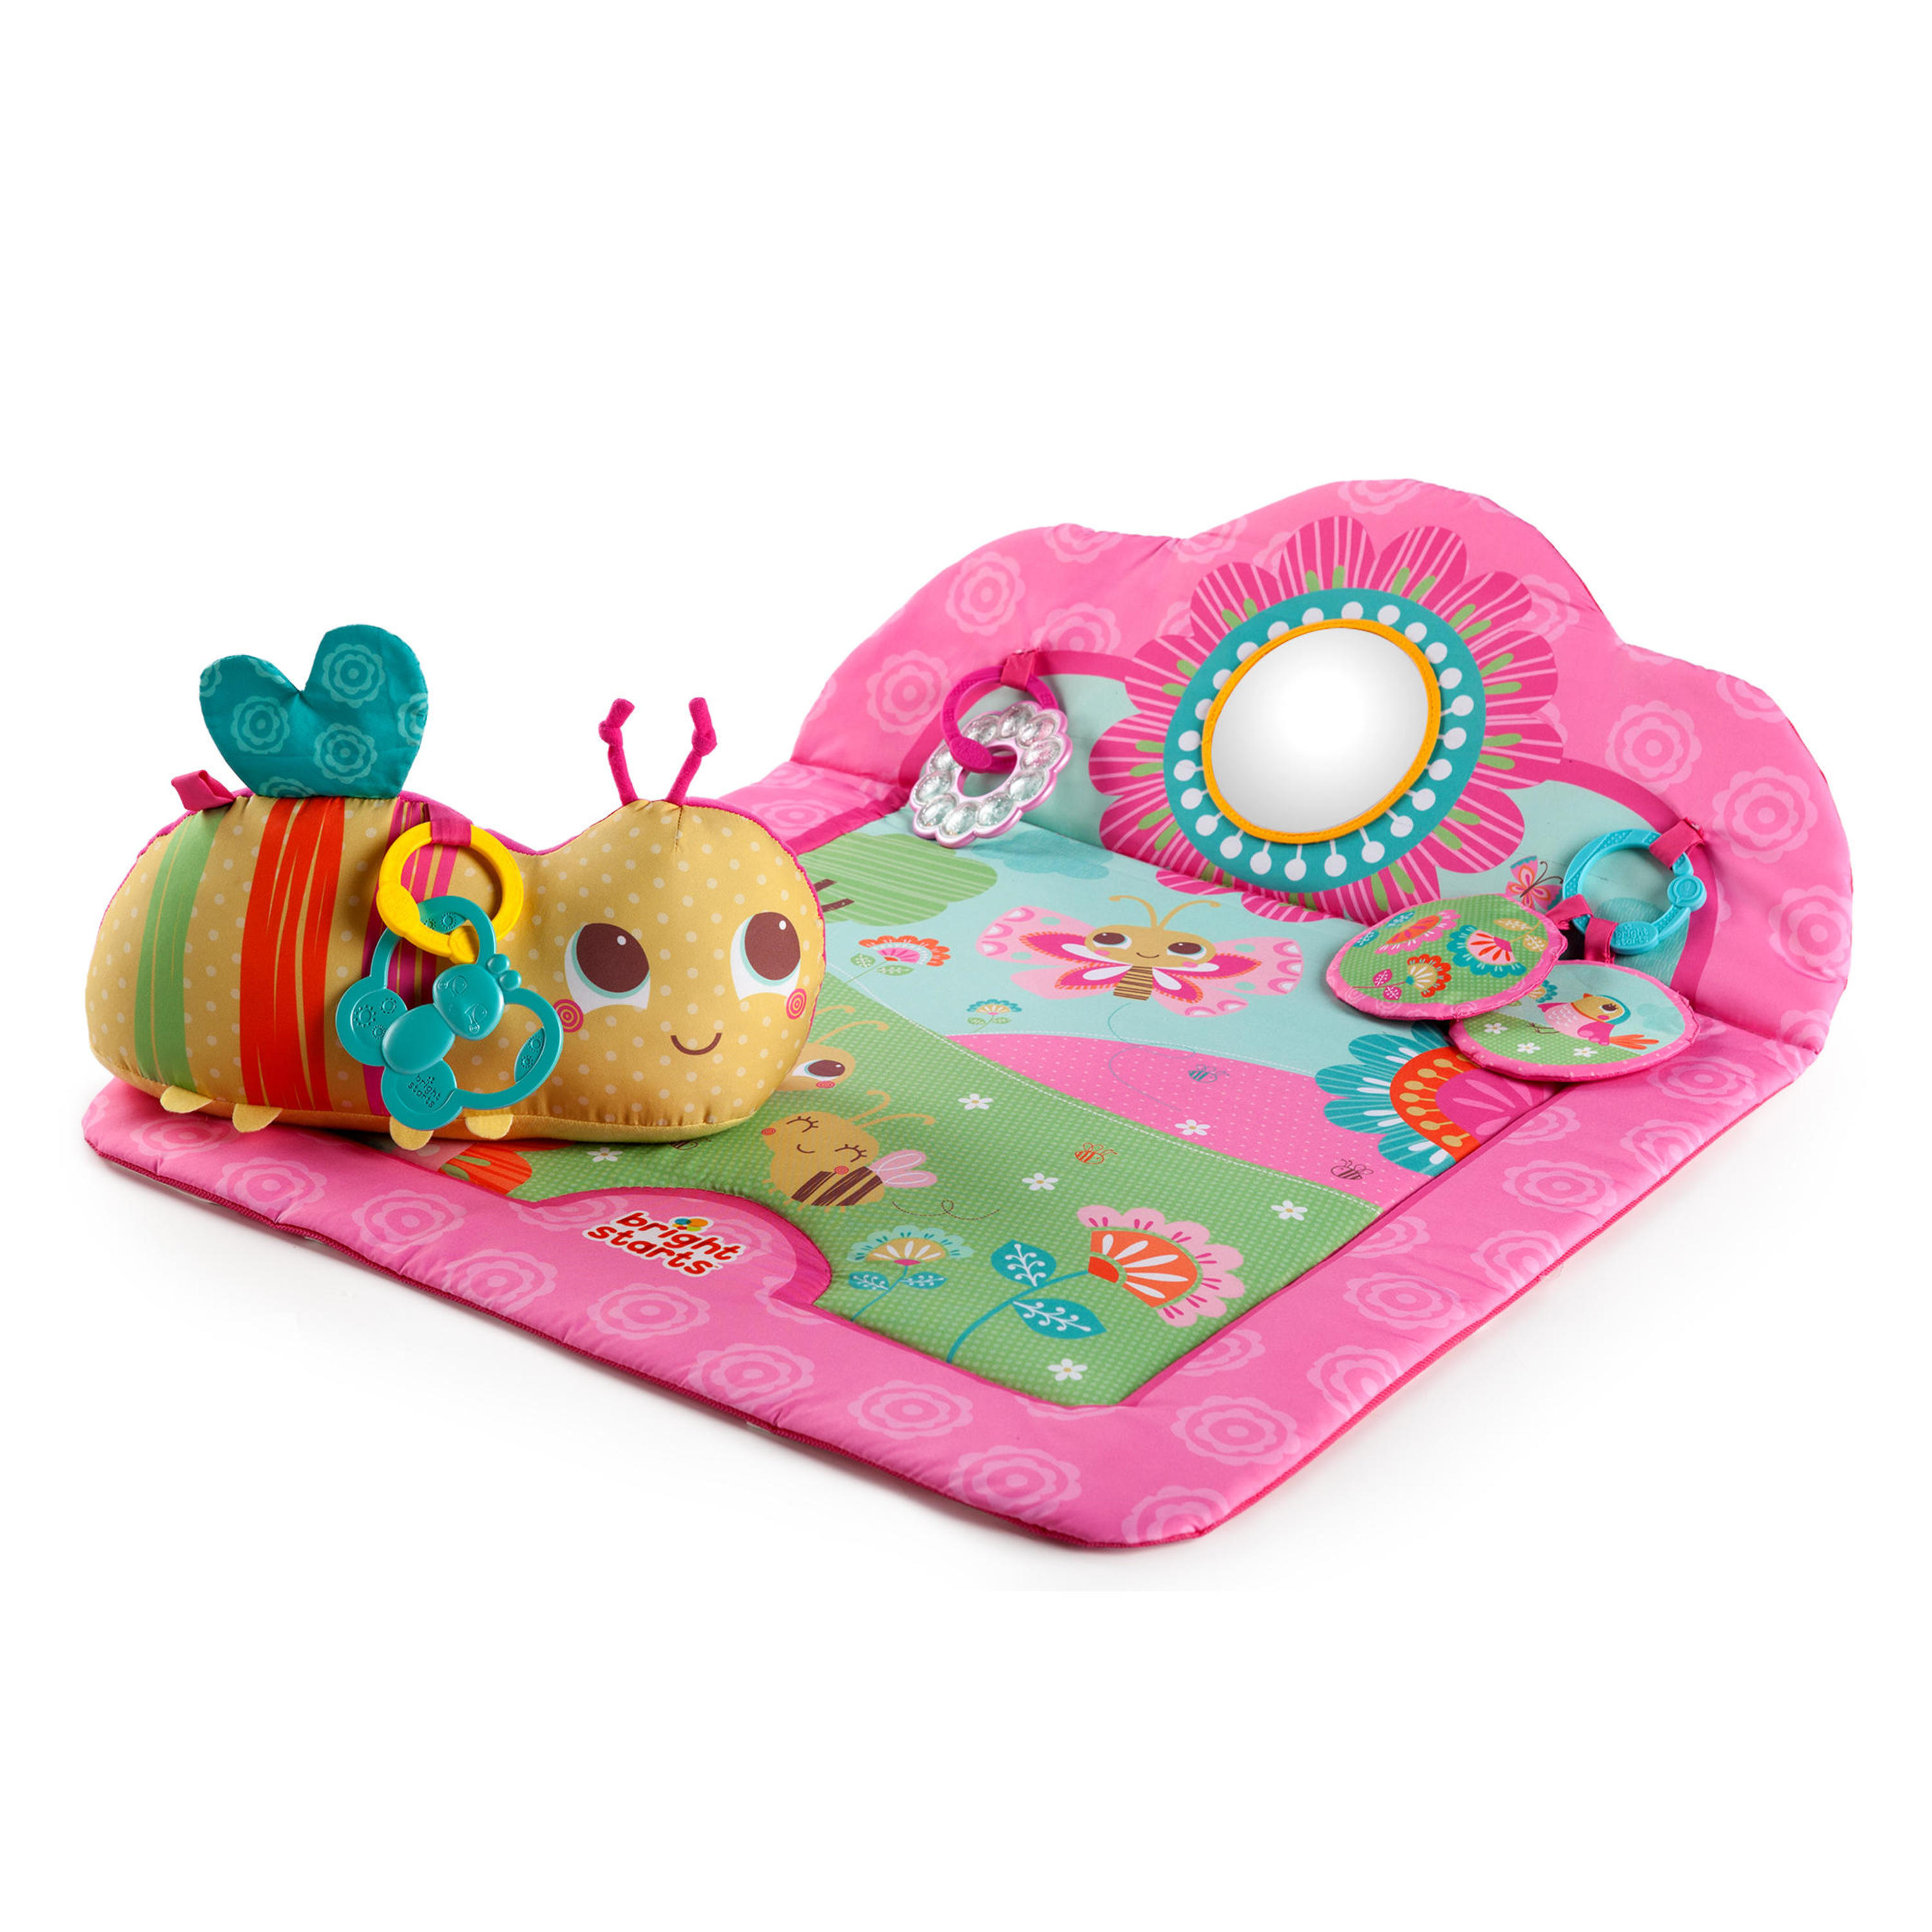 Bright Starts Prop Activity Play Mat with Support Pillow - Flowers & Friends